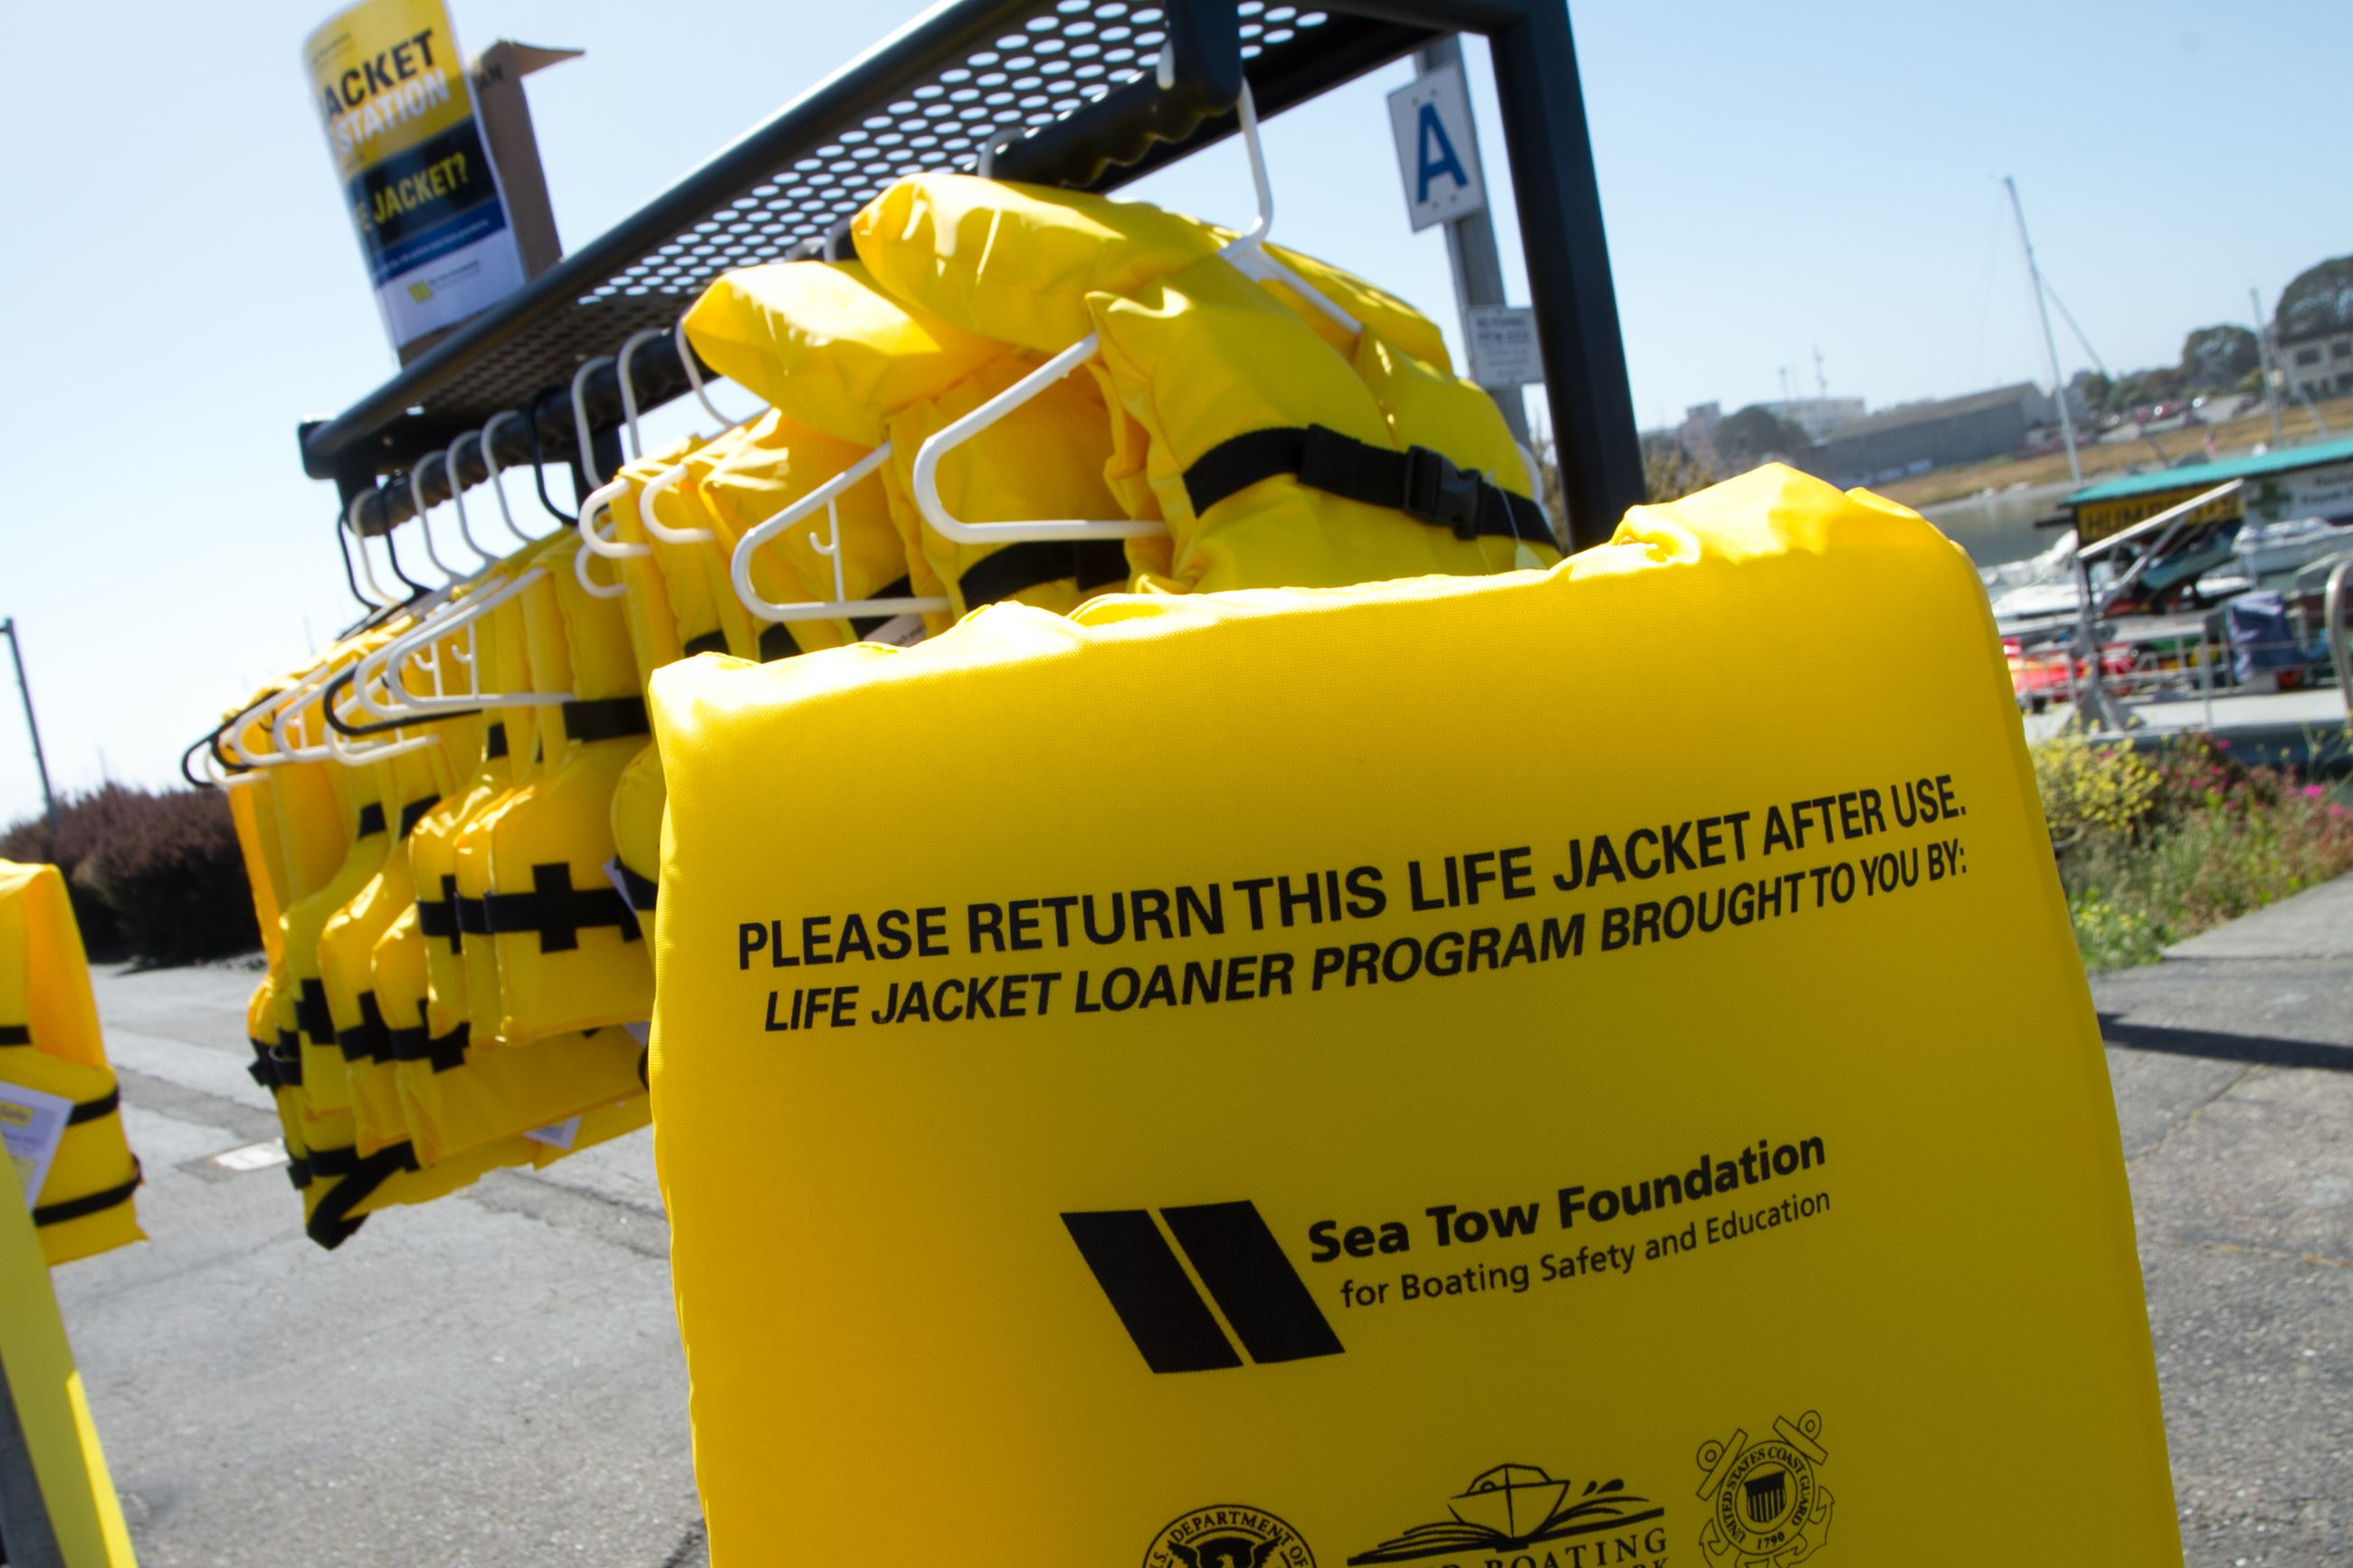 Brightly colored life jackets are available to borrow at loan stations throughout Humboldt County.